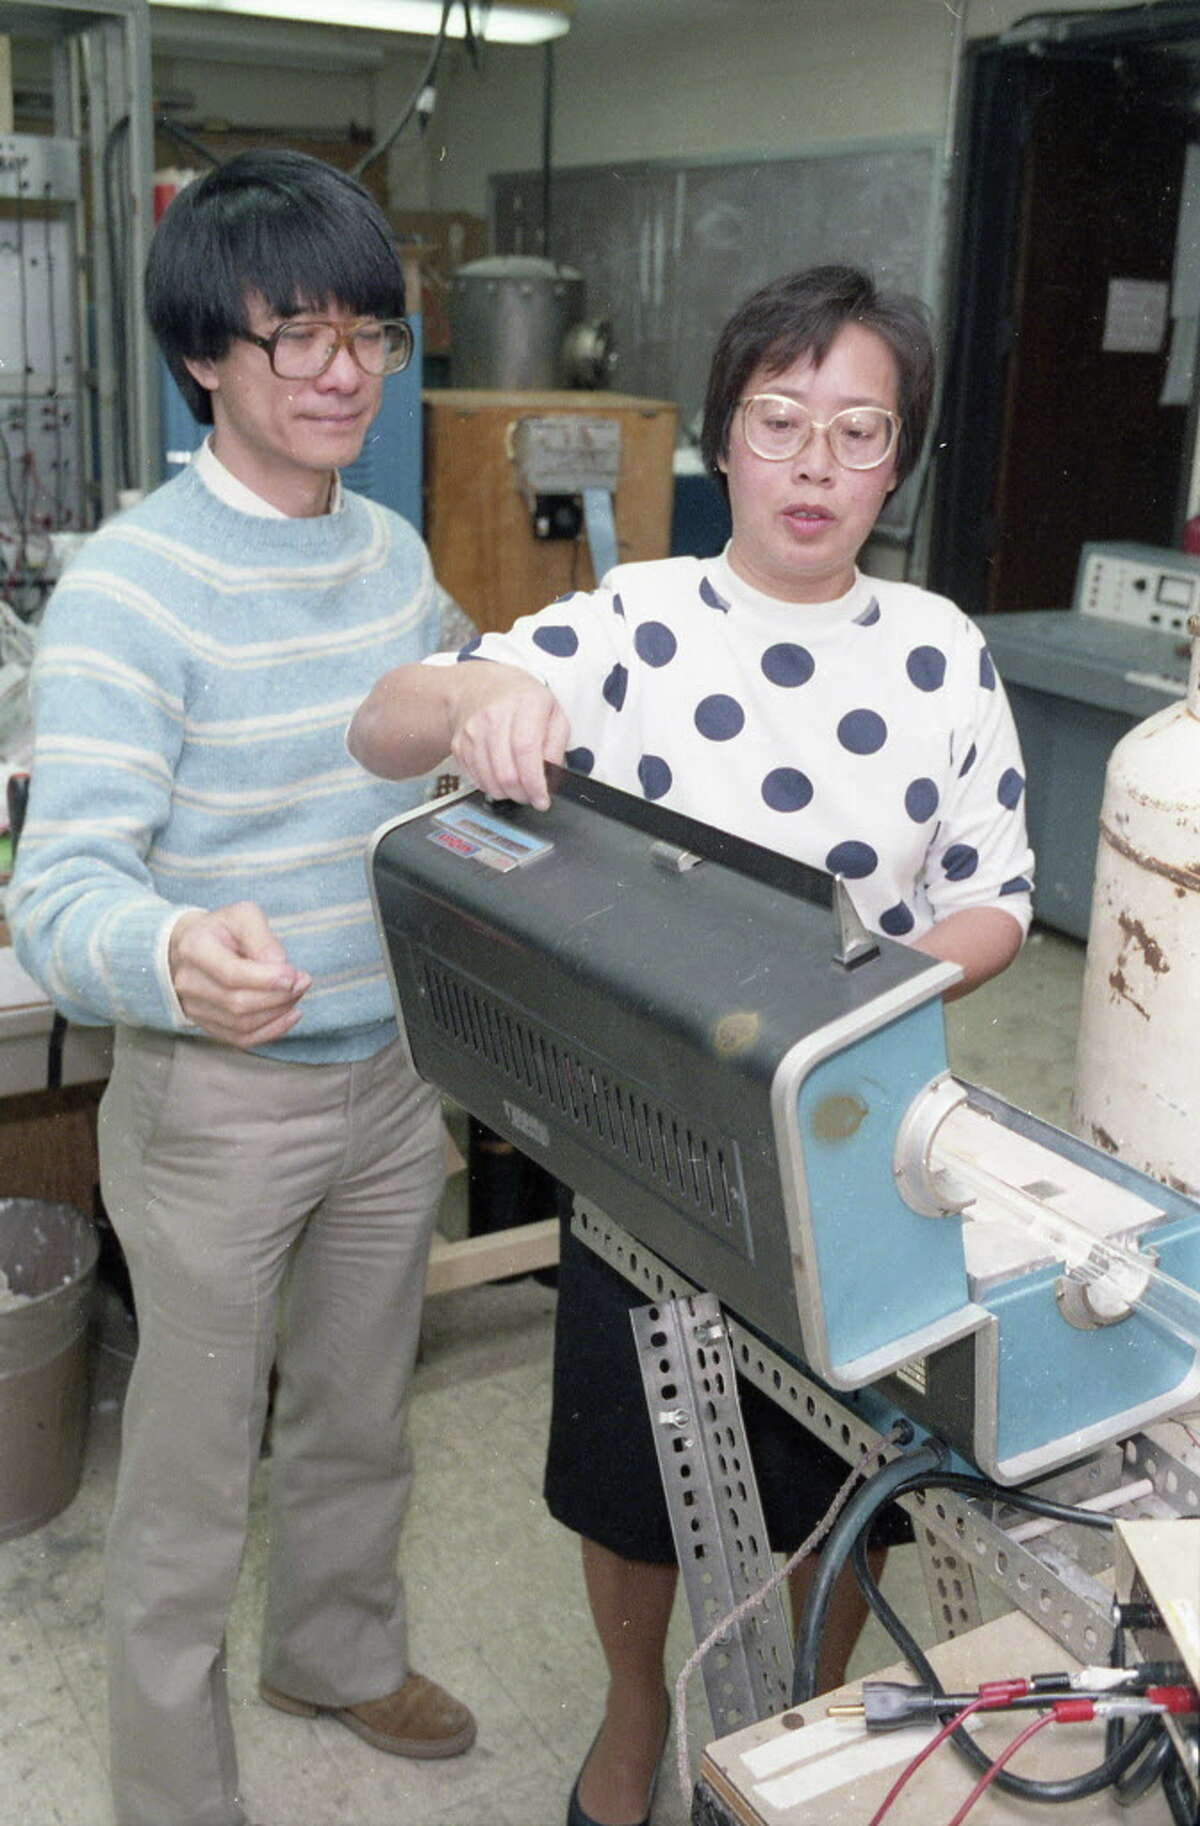 01/02/1987 - UH physics professor Paul Chu and associate Ruling Meng work on creating a material that becomes a superconductor at a temperature far higher than any known previously.